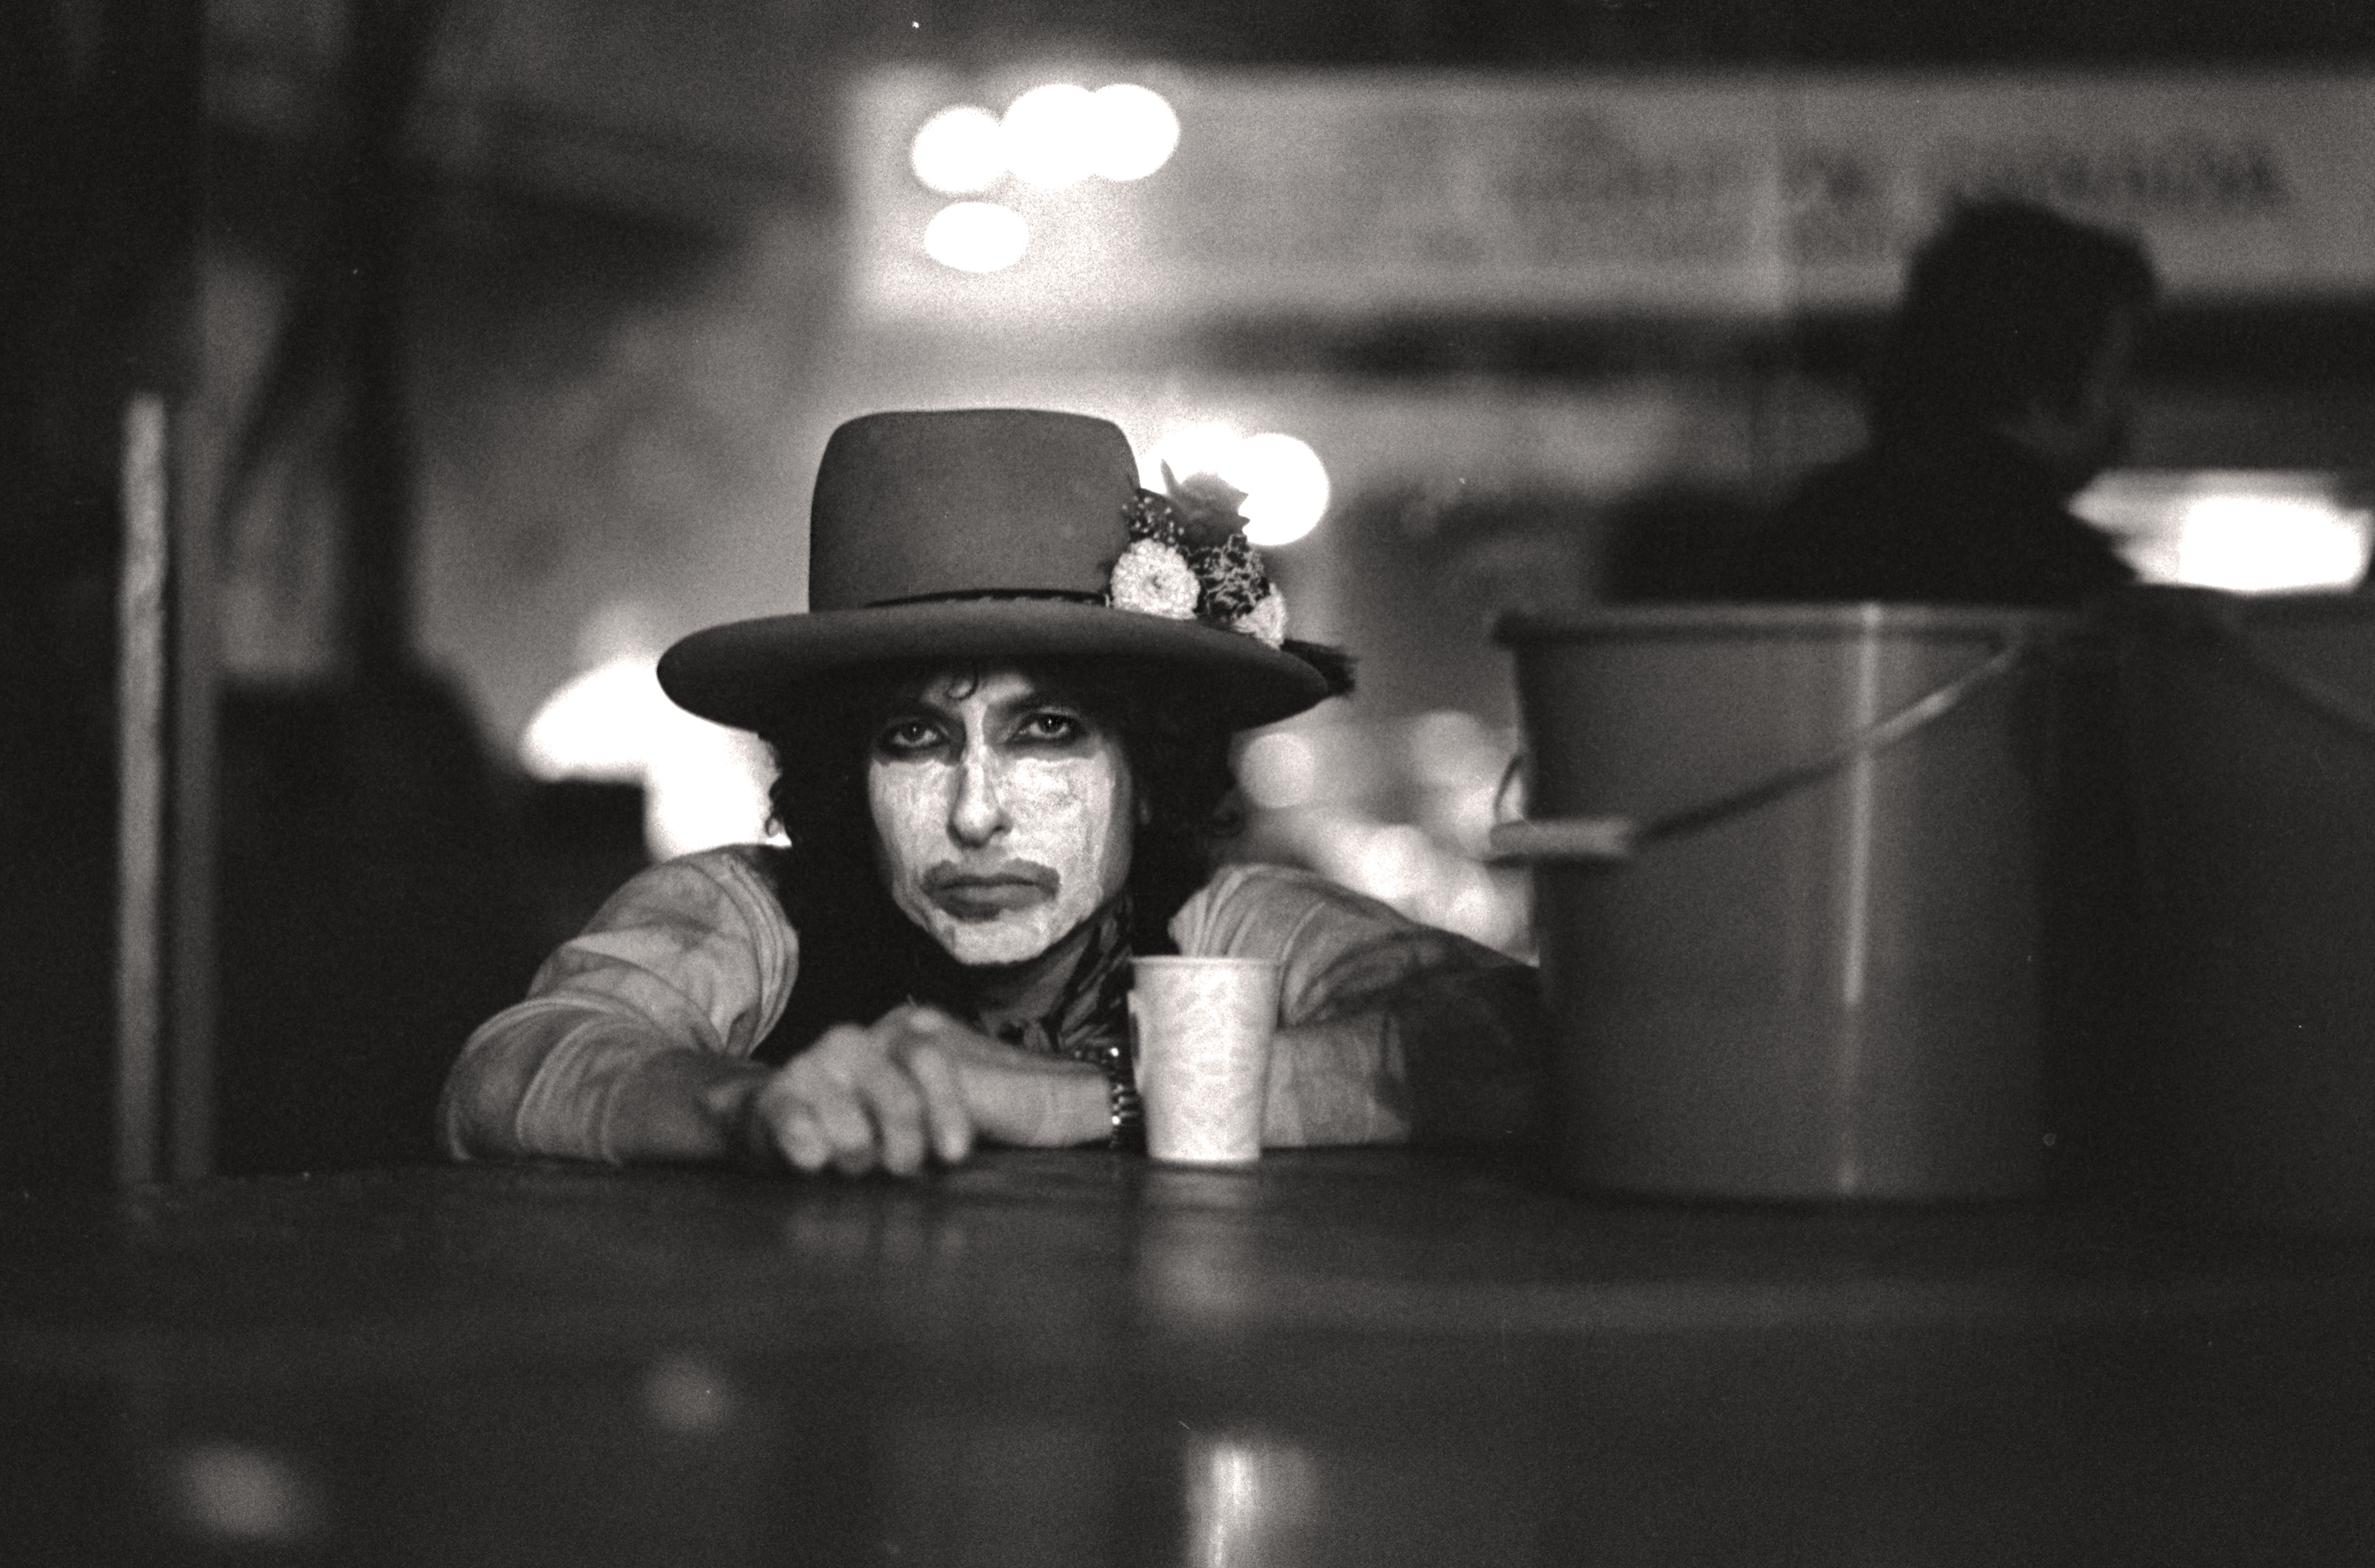 Bob Dylan in a still from the documentary Rolling Thunder Revue: A Bob Dylan Story by Martin Scorsese.